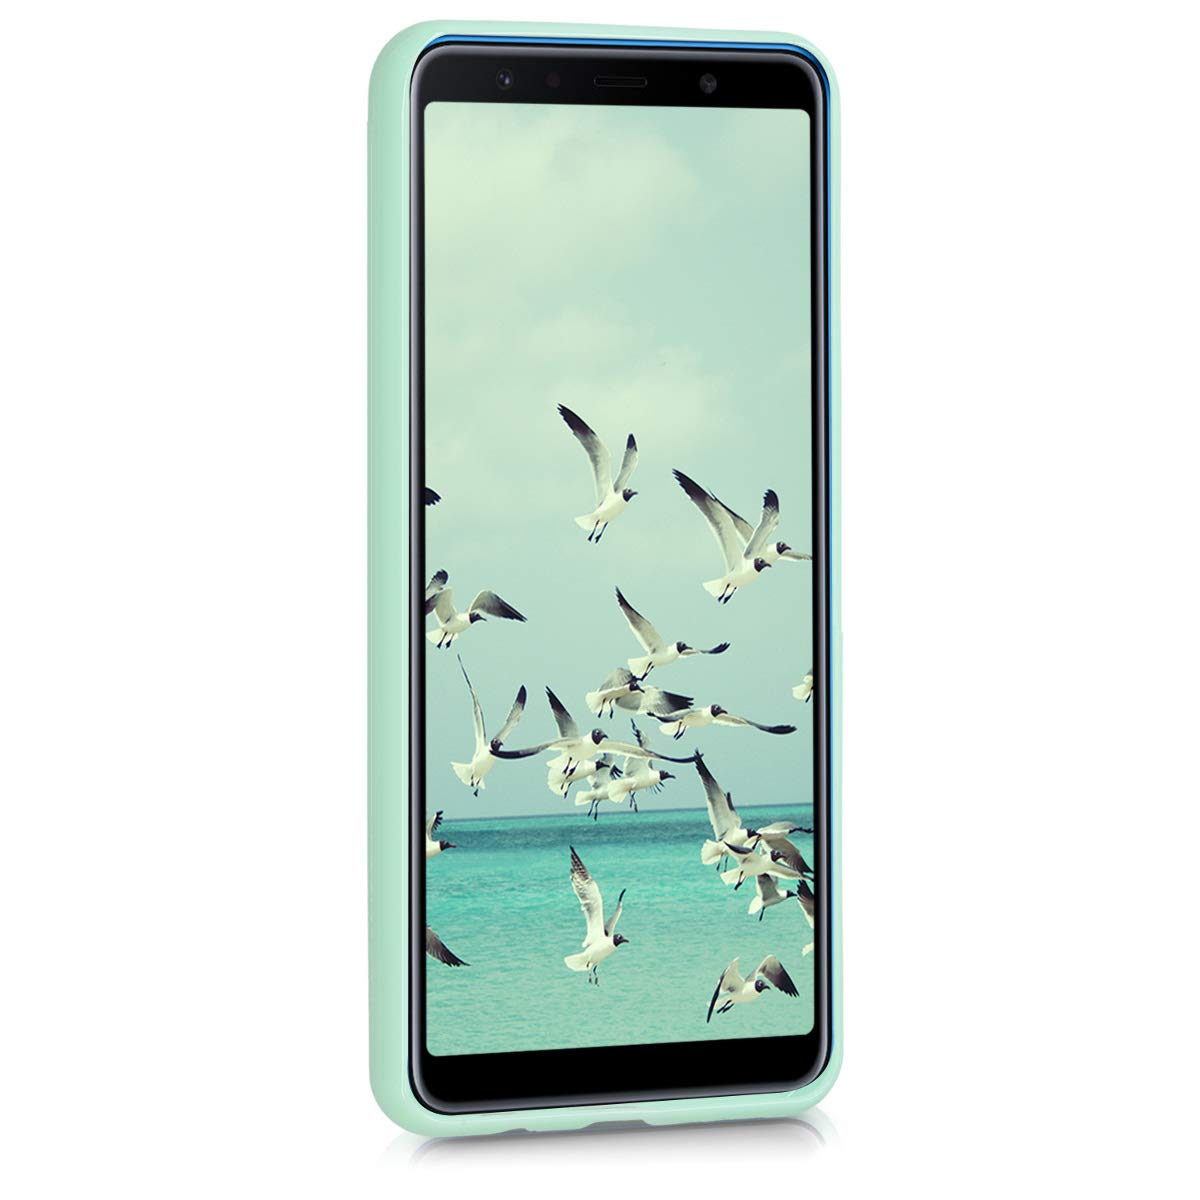 kwmobile TPU Silicone Case for Samsung Galaxy A7 (2018) - Soft Flexible Shock Absorbent Protective Phone Cover - Mint Matte